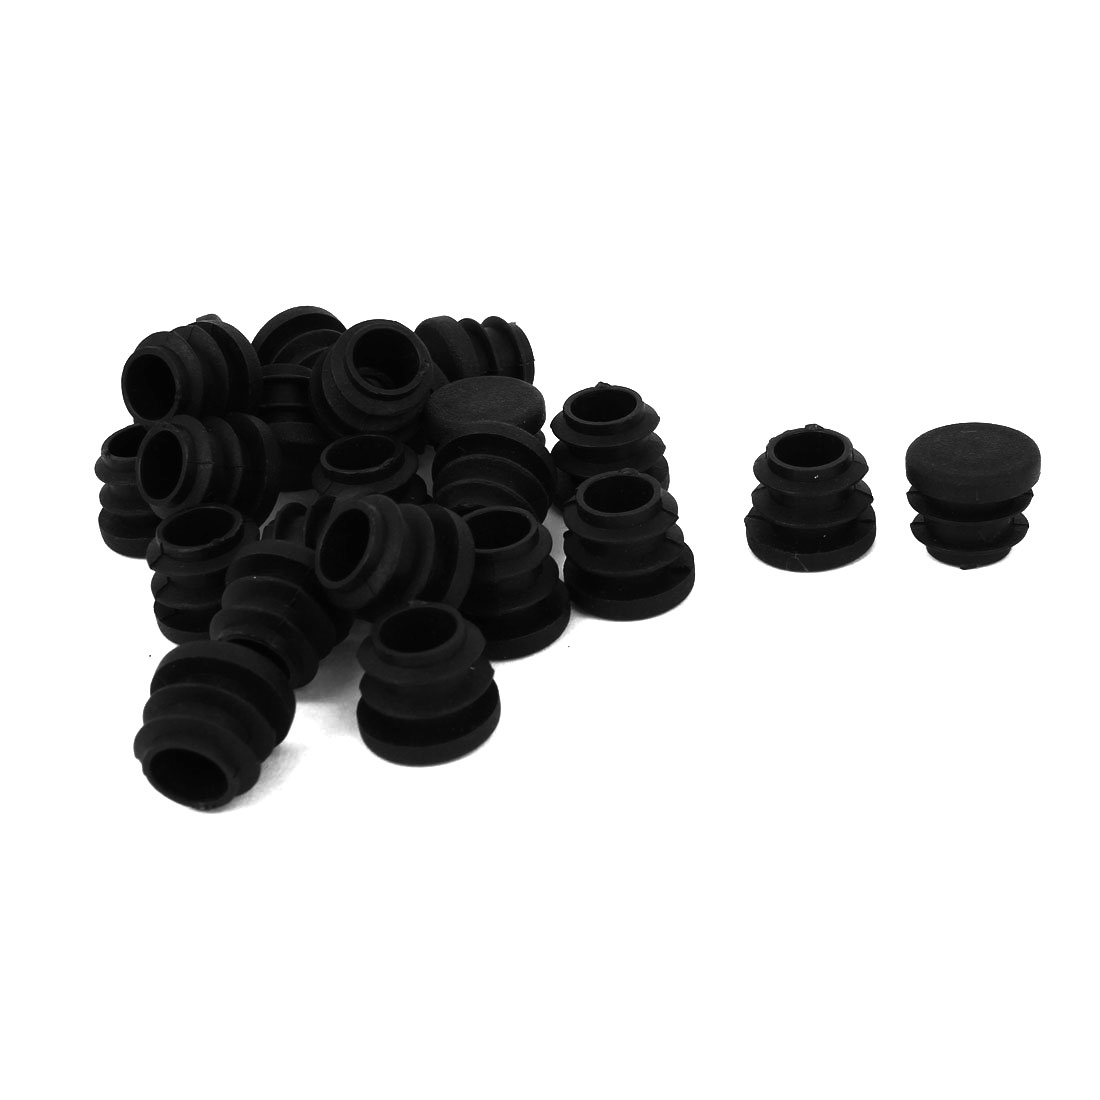 Black 16mm Dia Round Plastic Blanking End Cap Tubing Pipe Insert 24 Pcs